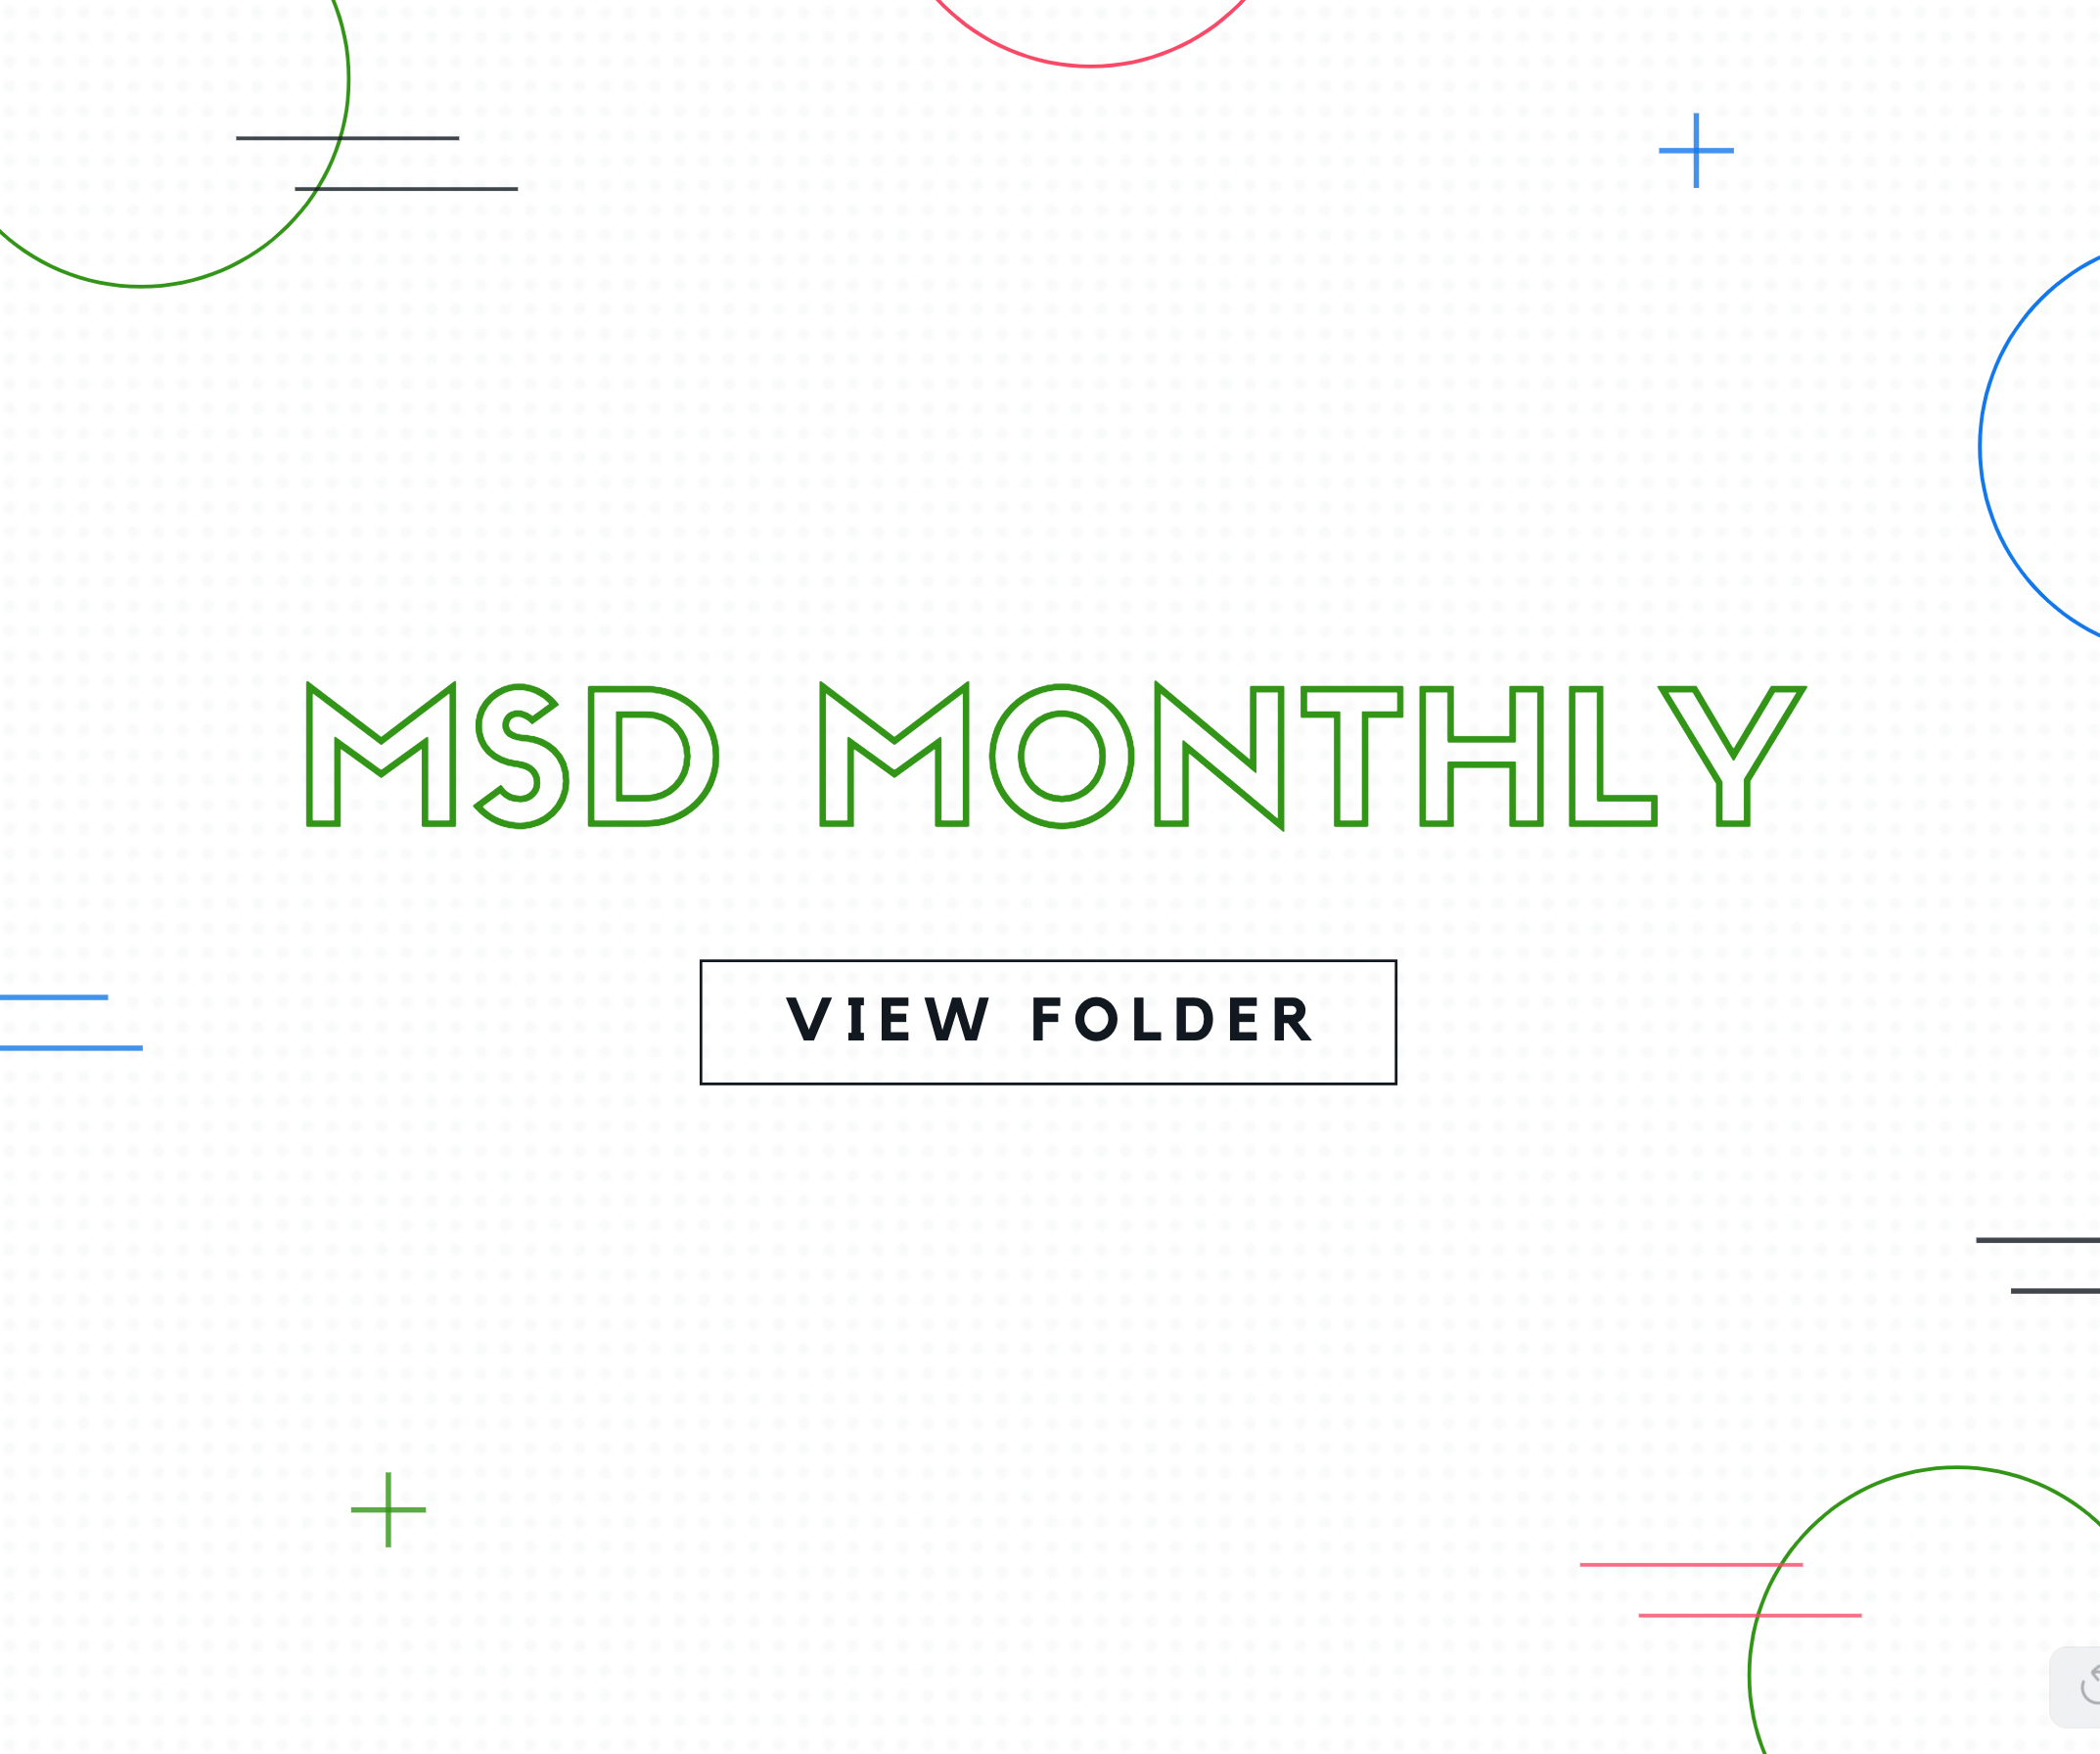 MSD Monthly